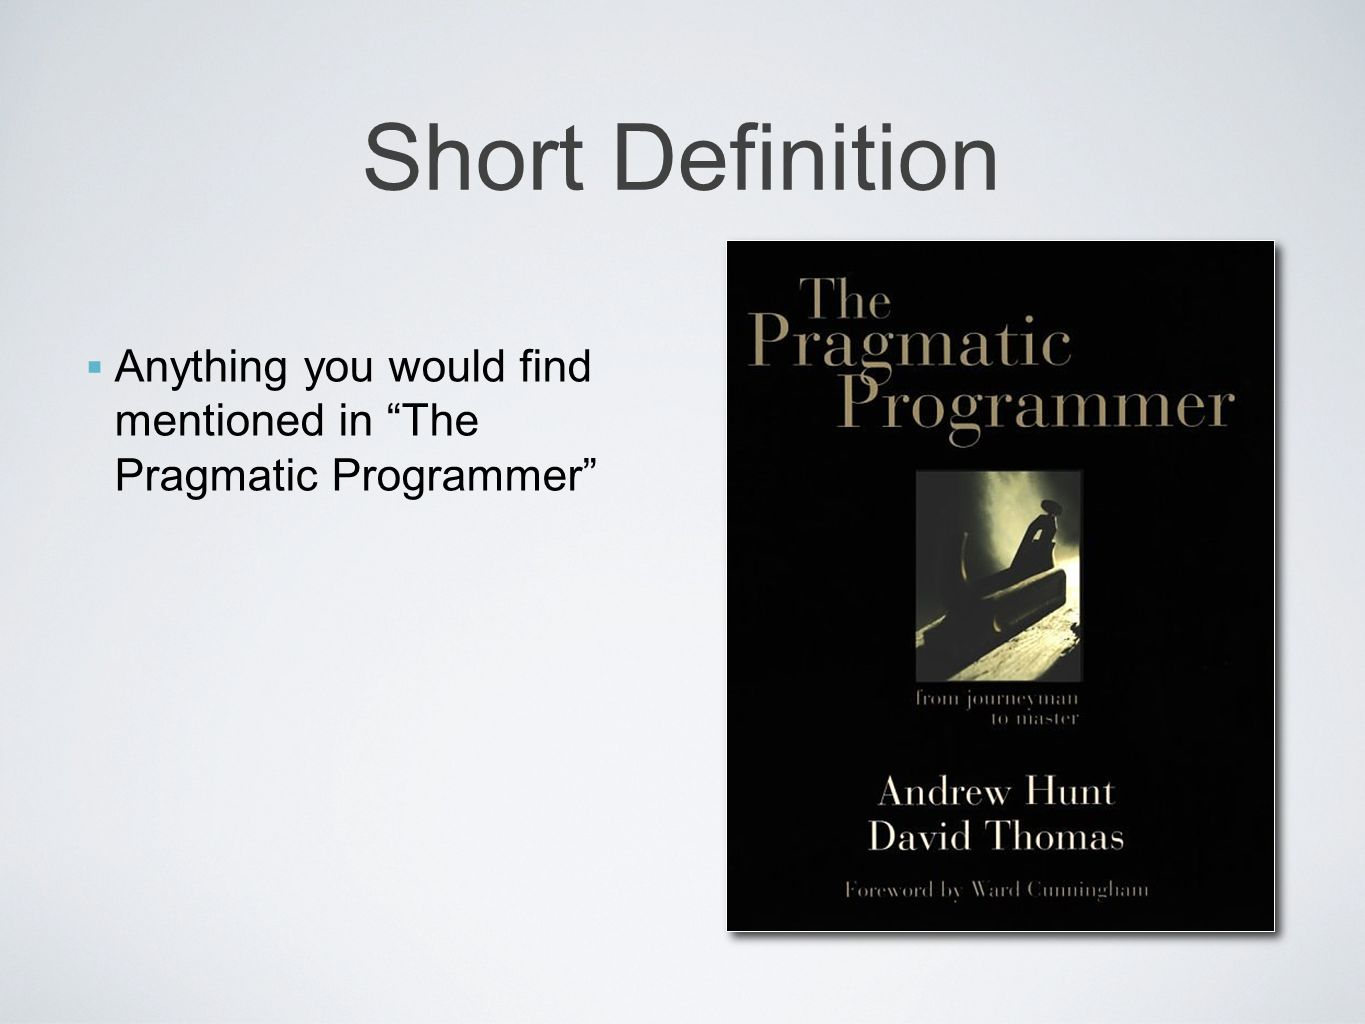 Short Definition Anything you would find mentioned in The Pragmatic Programmer